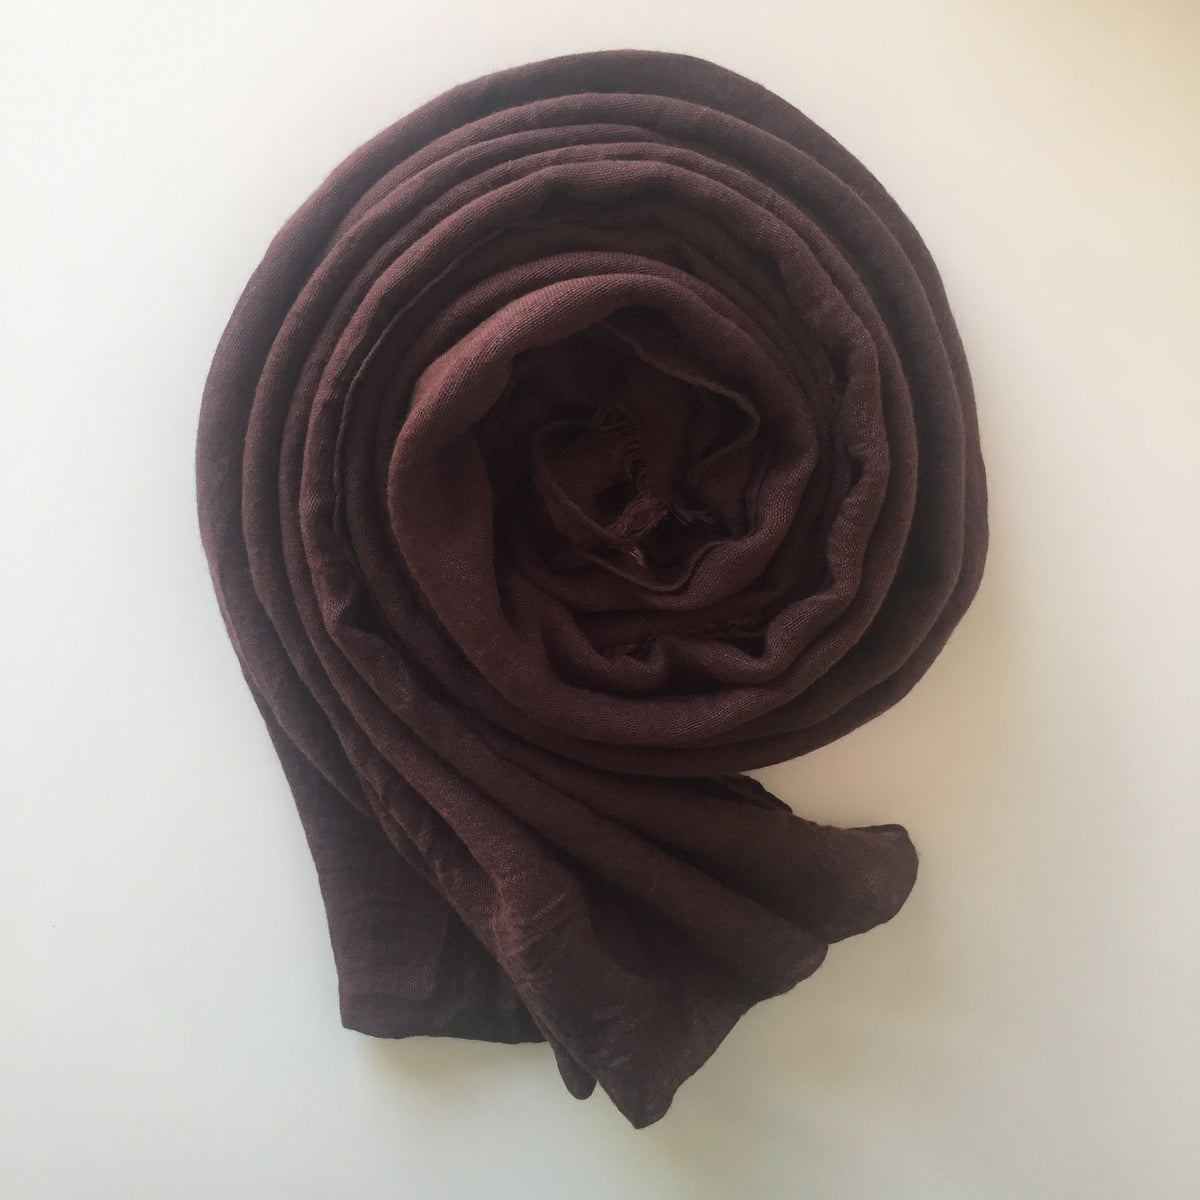 Premium Breathable Cotton Blend Hijab | Dark Chocolate - Mohuma Modesty House